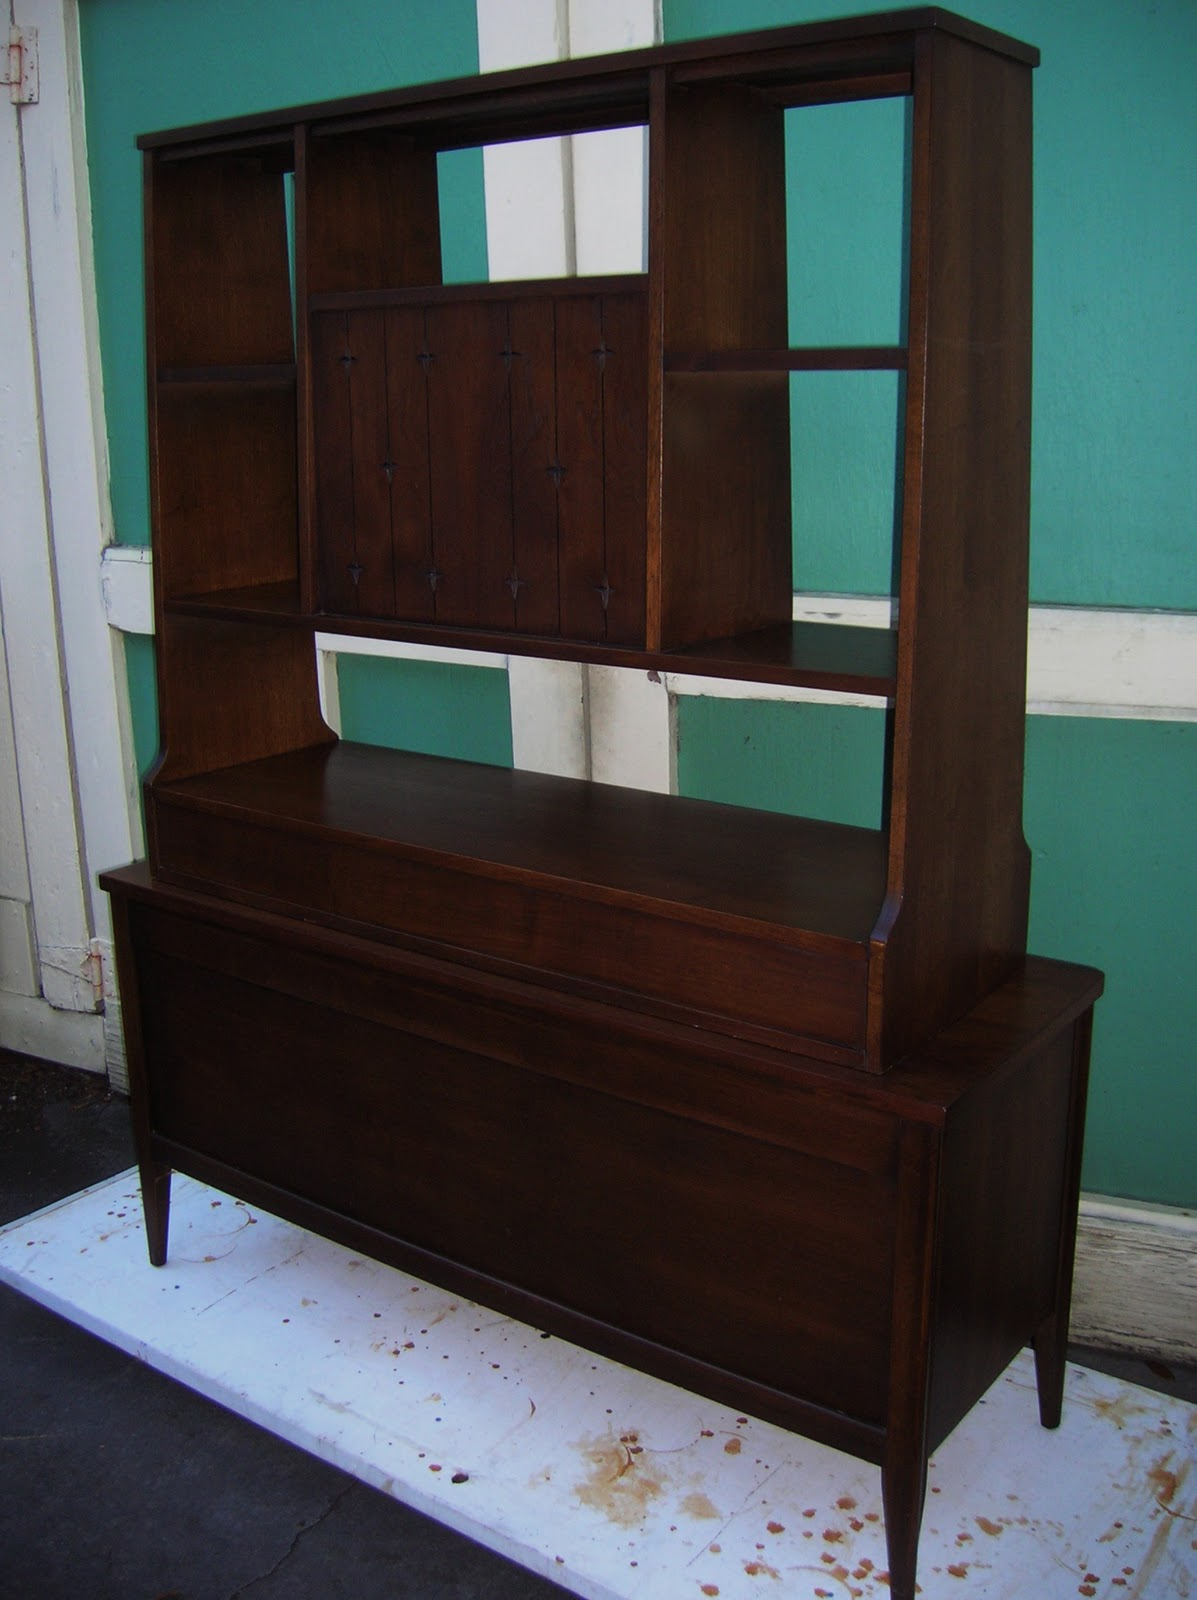 A Modern Line Heywood Wakefield refinishing and other mid century